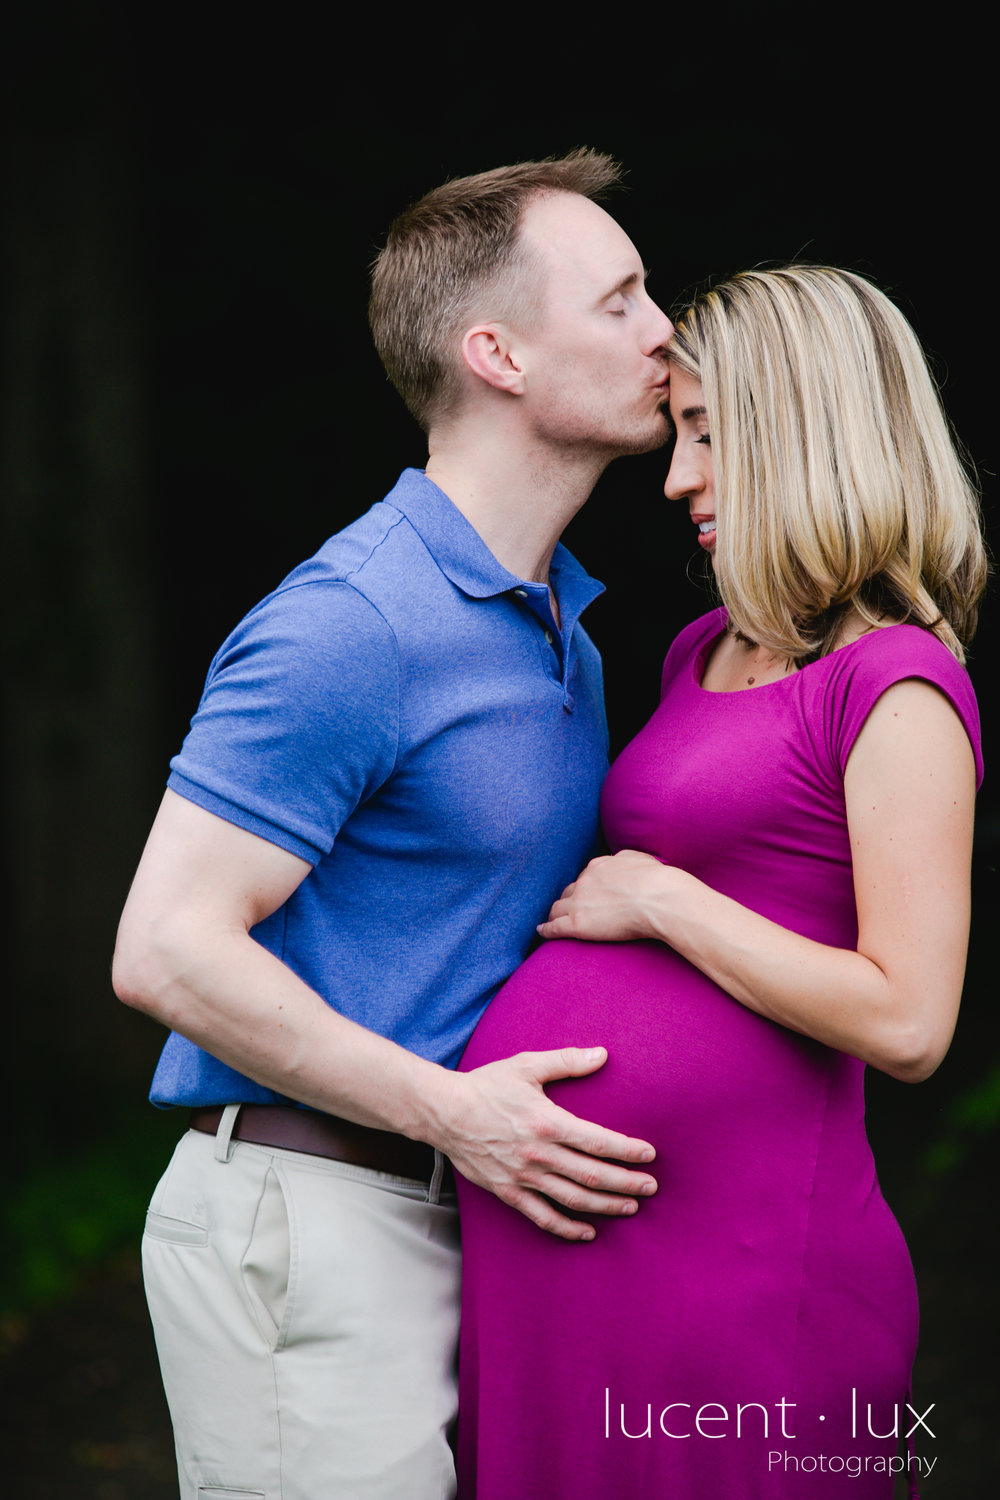 Maternity-Photography-Maryland-Baltimore-Photographer-Family-Portraits-Couple-Engagement-Newborn-106.jpg